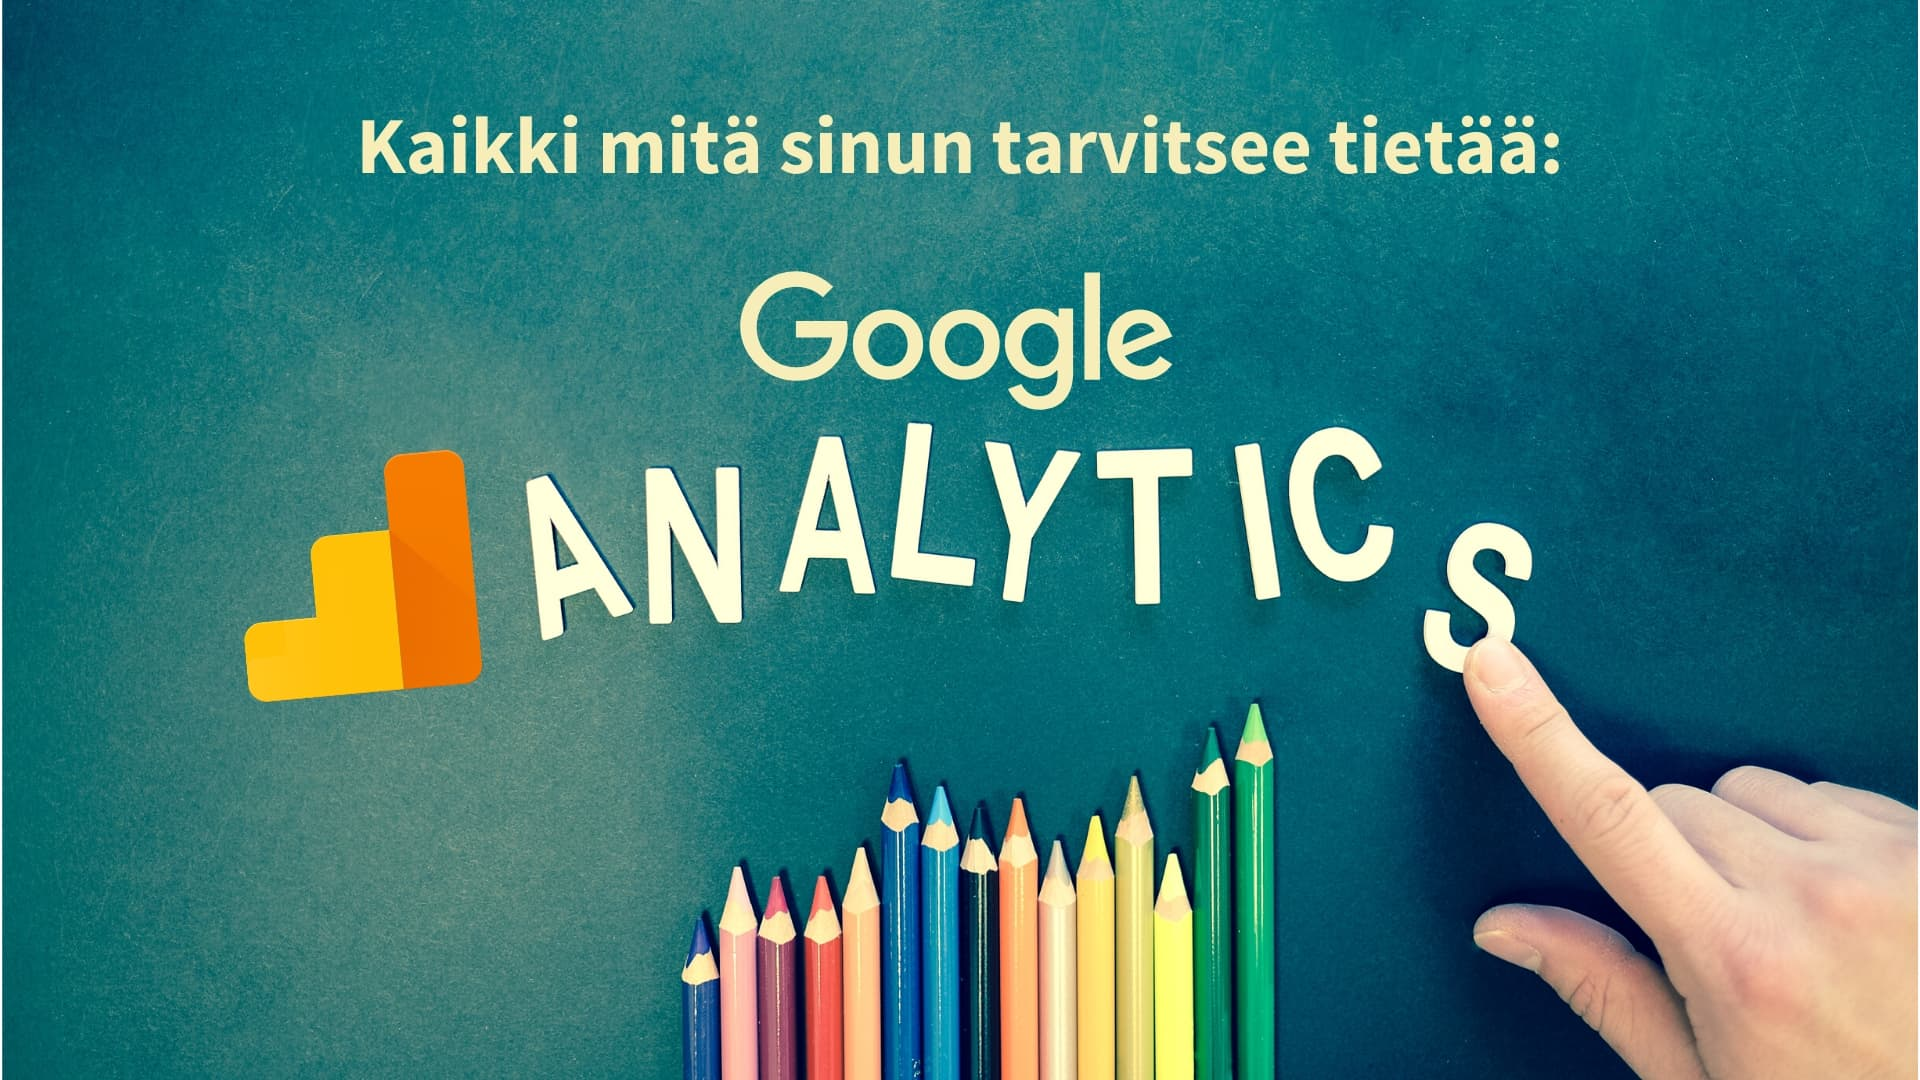 Google analytics esittely kuva